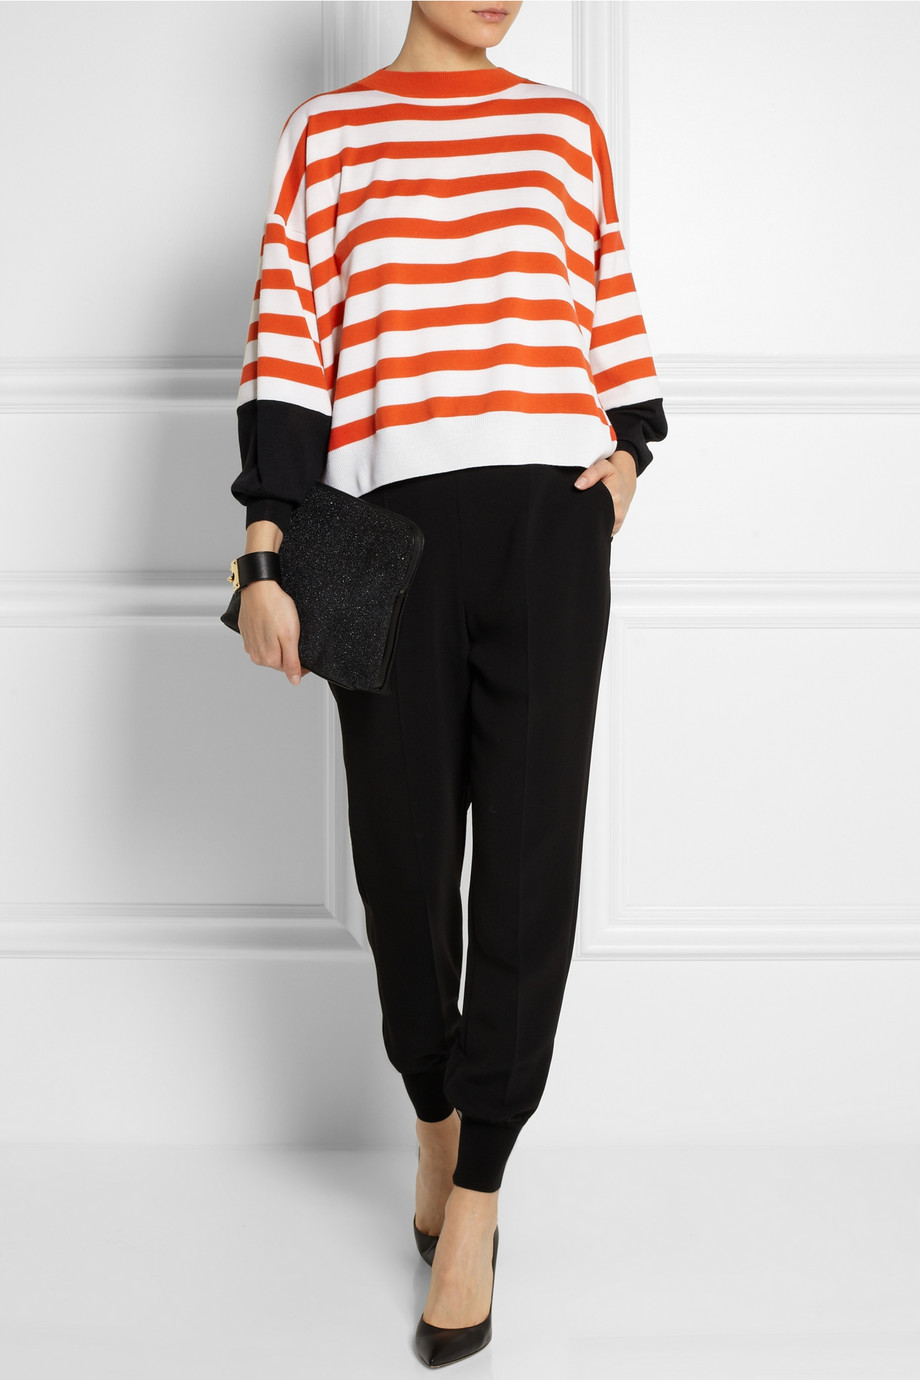 STELLA McCARTNEY Striped Wool Sweater buy HERE